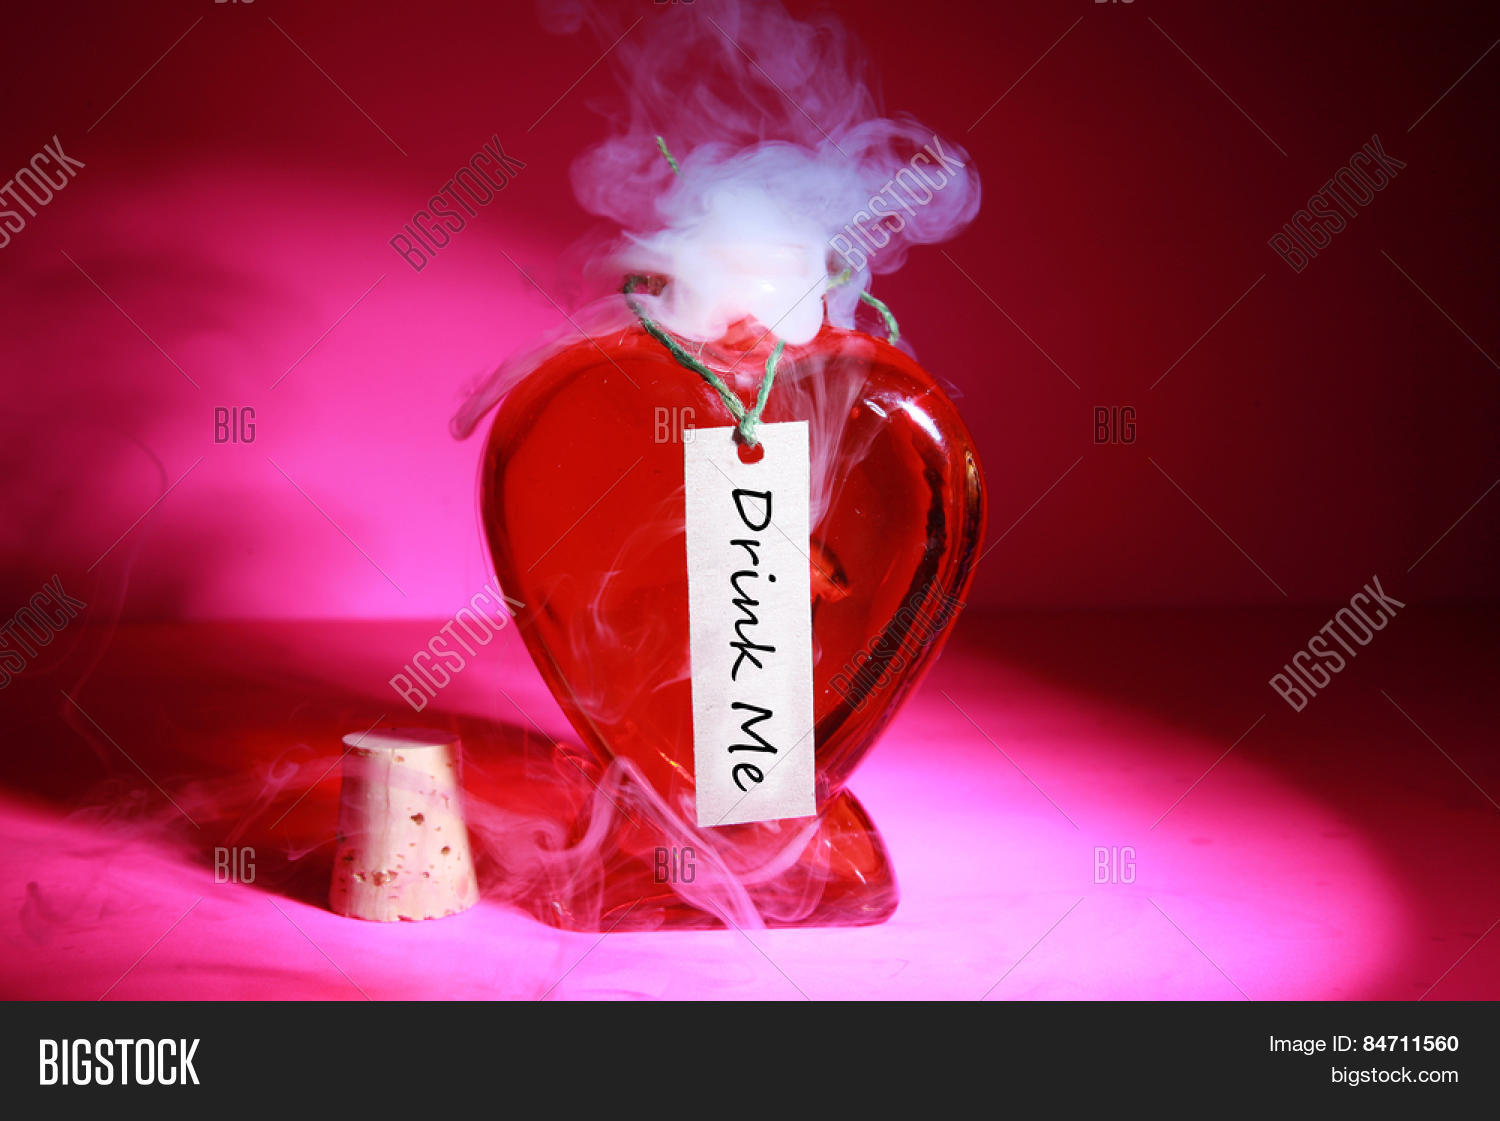 Genuine LOVE Potion Image & Photo (Free Trial) | Bigstock